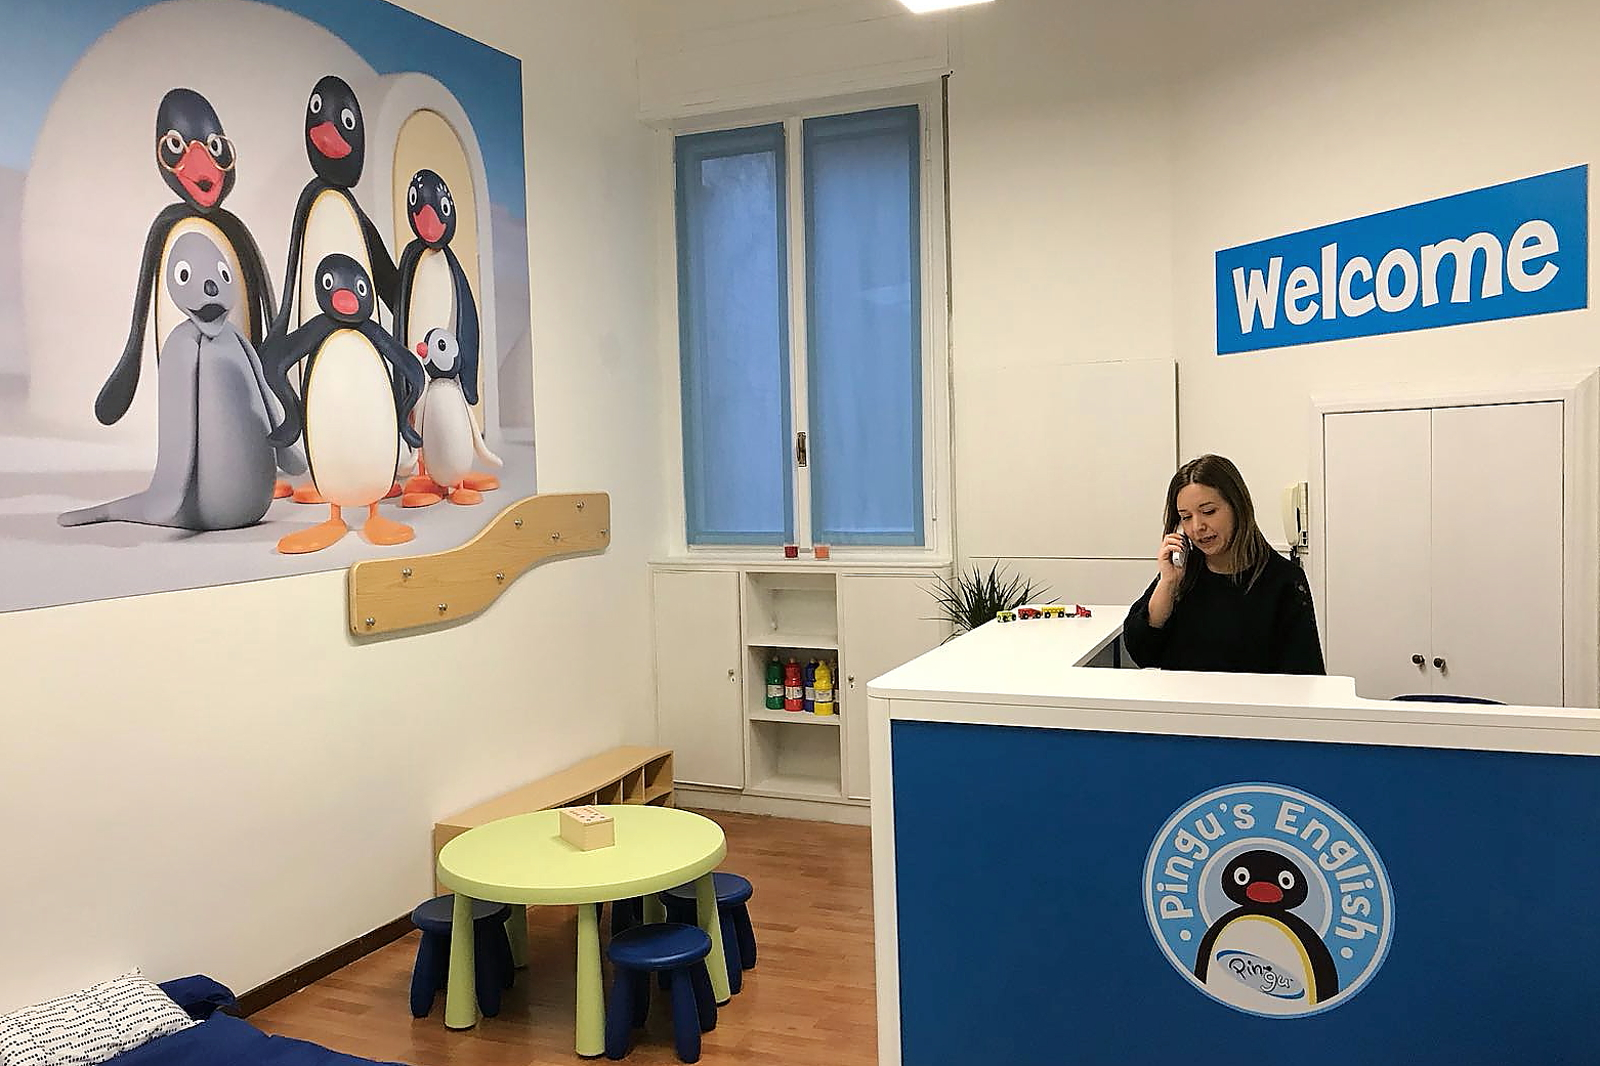 Pingu's English Legnano 01 - Sempione News